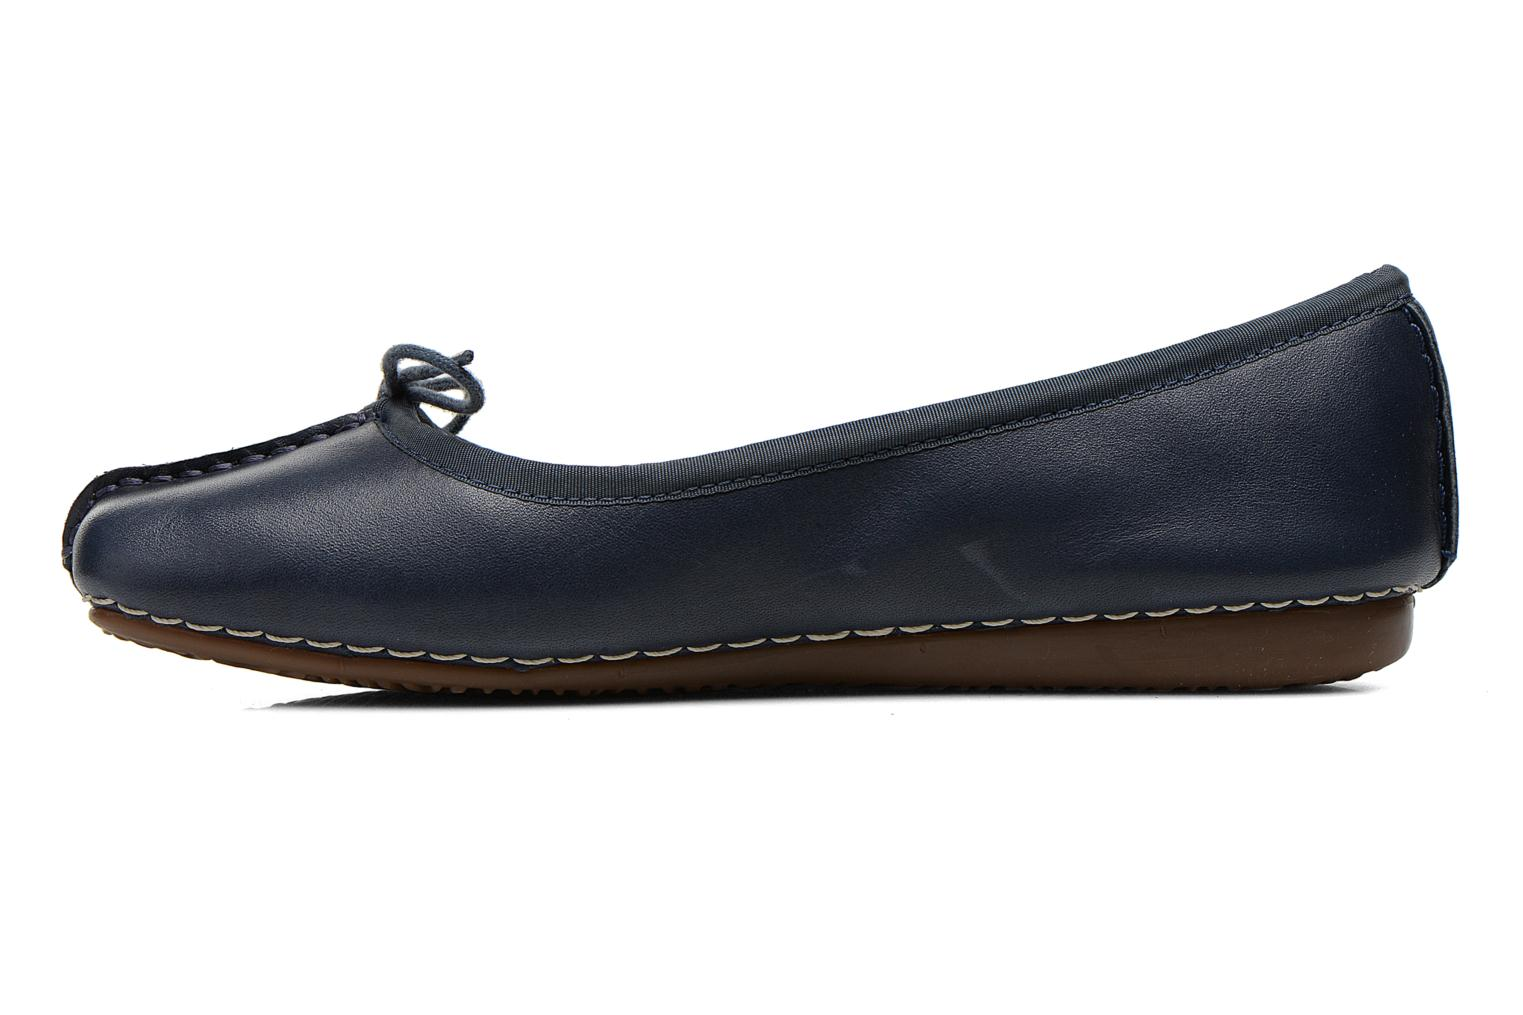 Freckle Ice Navy leather